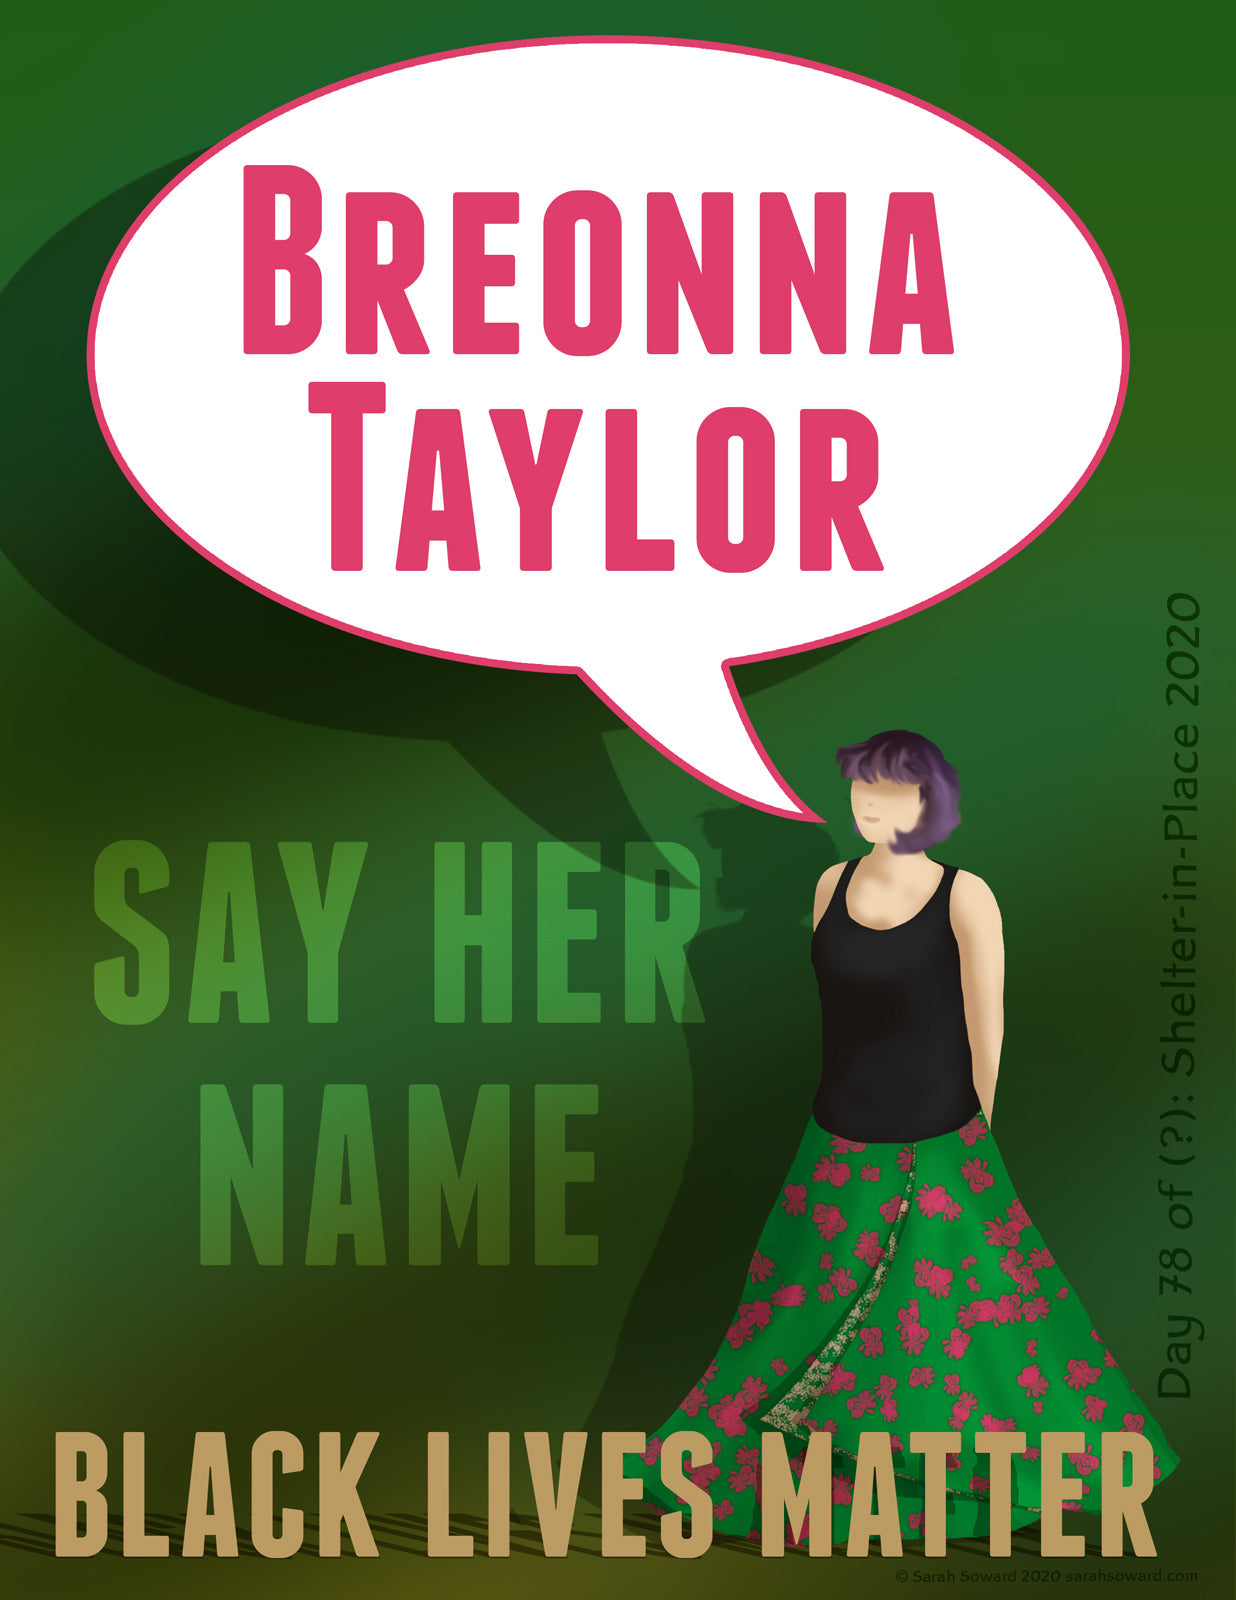 The text on the image is the important part. It reads, Breonna Taylor, Say Her Name, Black Lives Matter. A talk bubble surrounds the name Breonna Taylor and is being spoken by a white lady, me, in a green skirt with pink flowers an a black tank top.